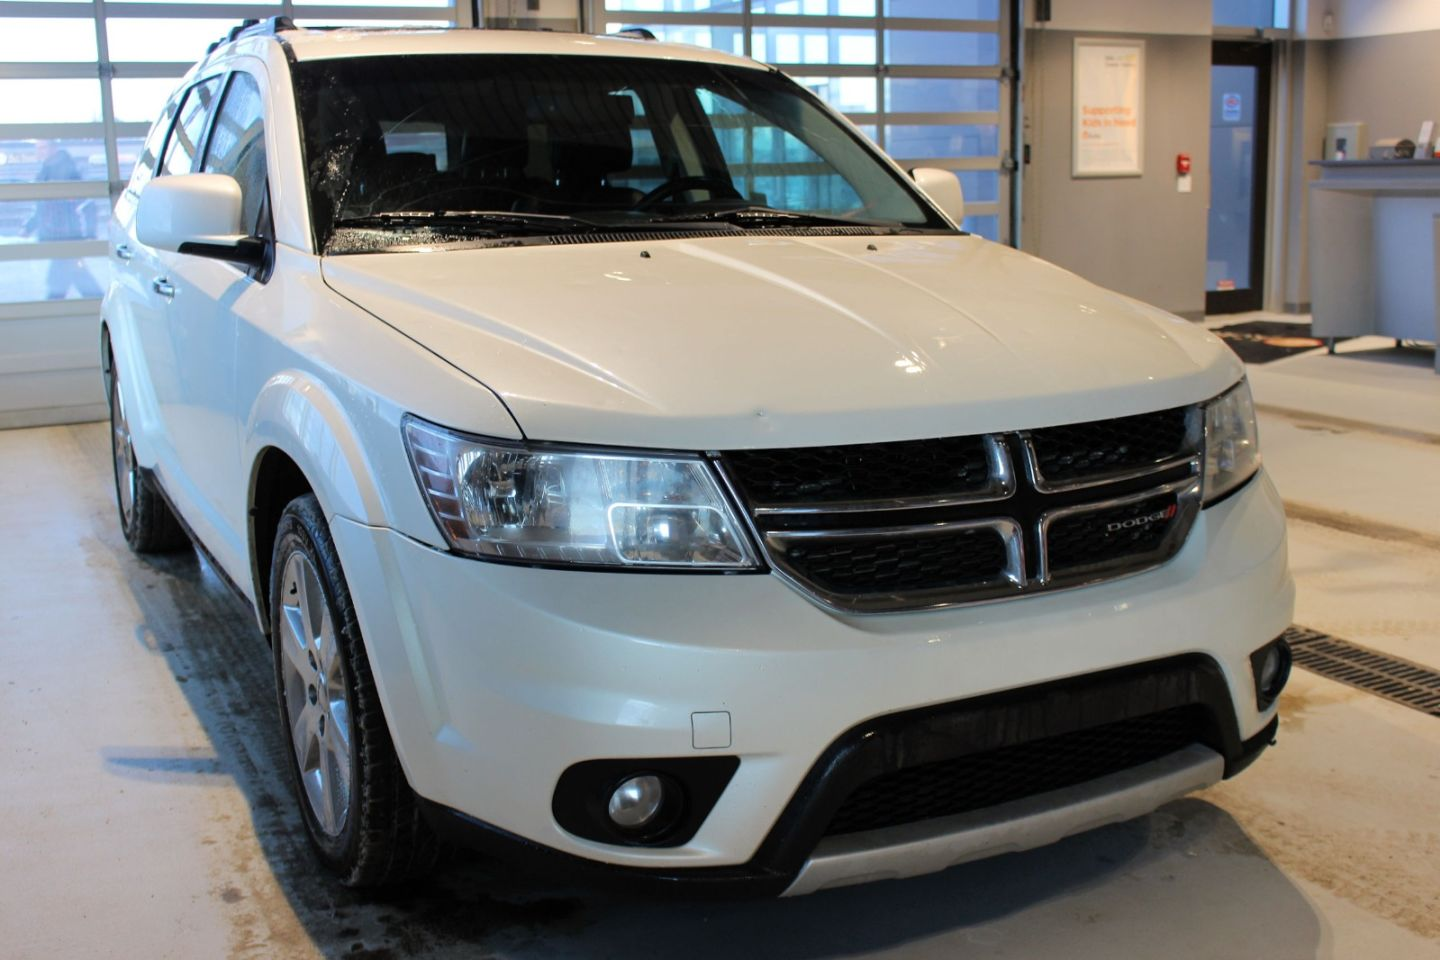 2015 Dodge Journey R/T for sale in Spruce Grove, Alberta